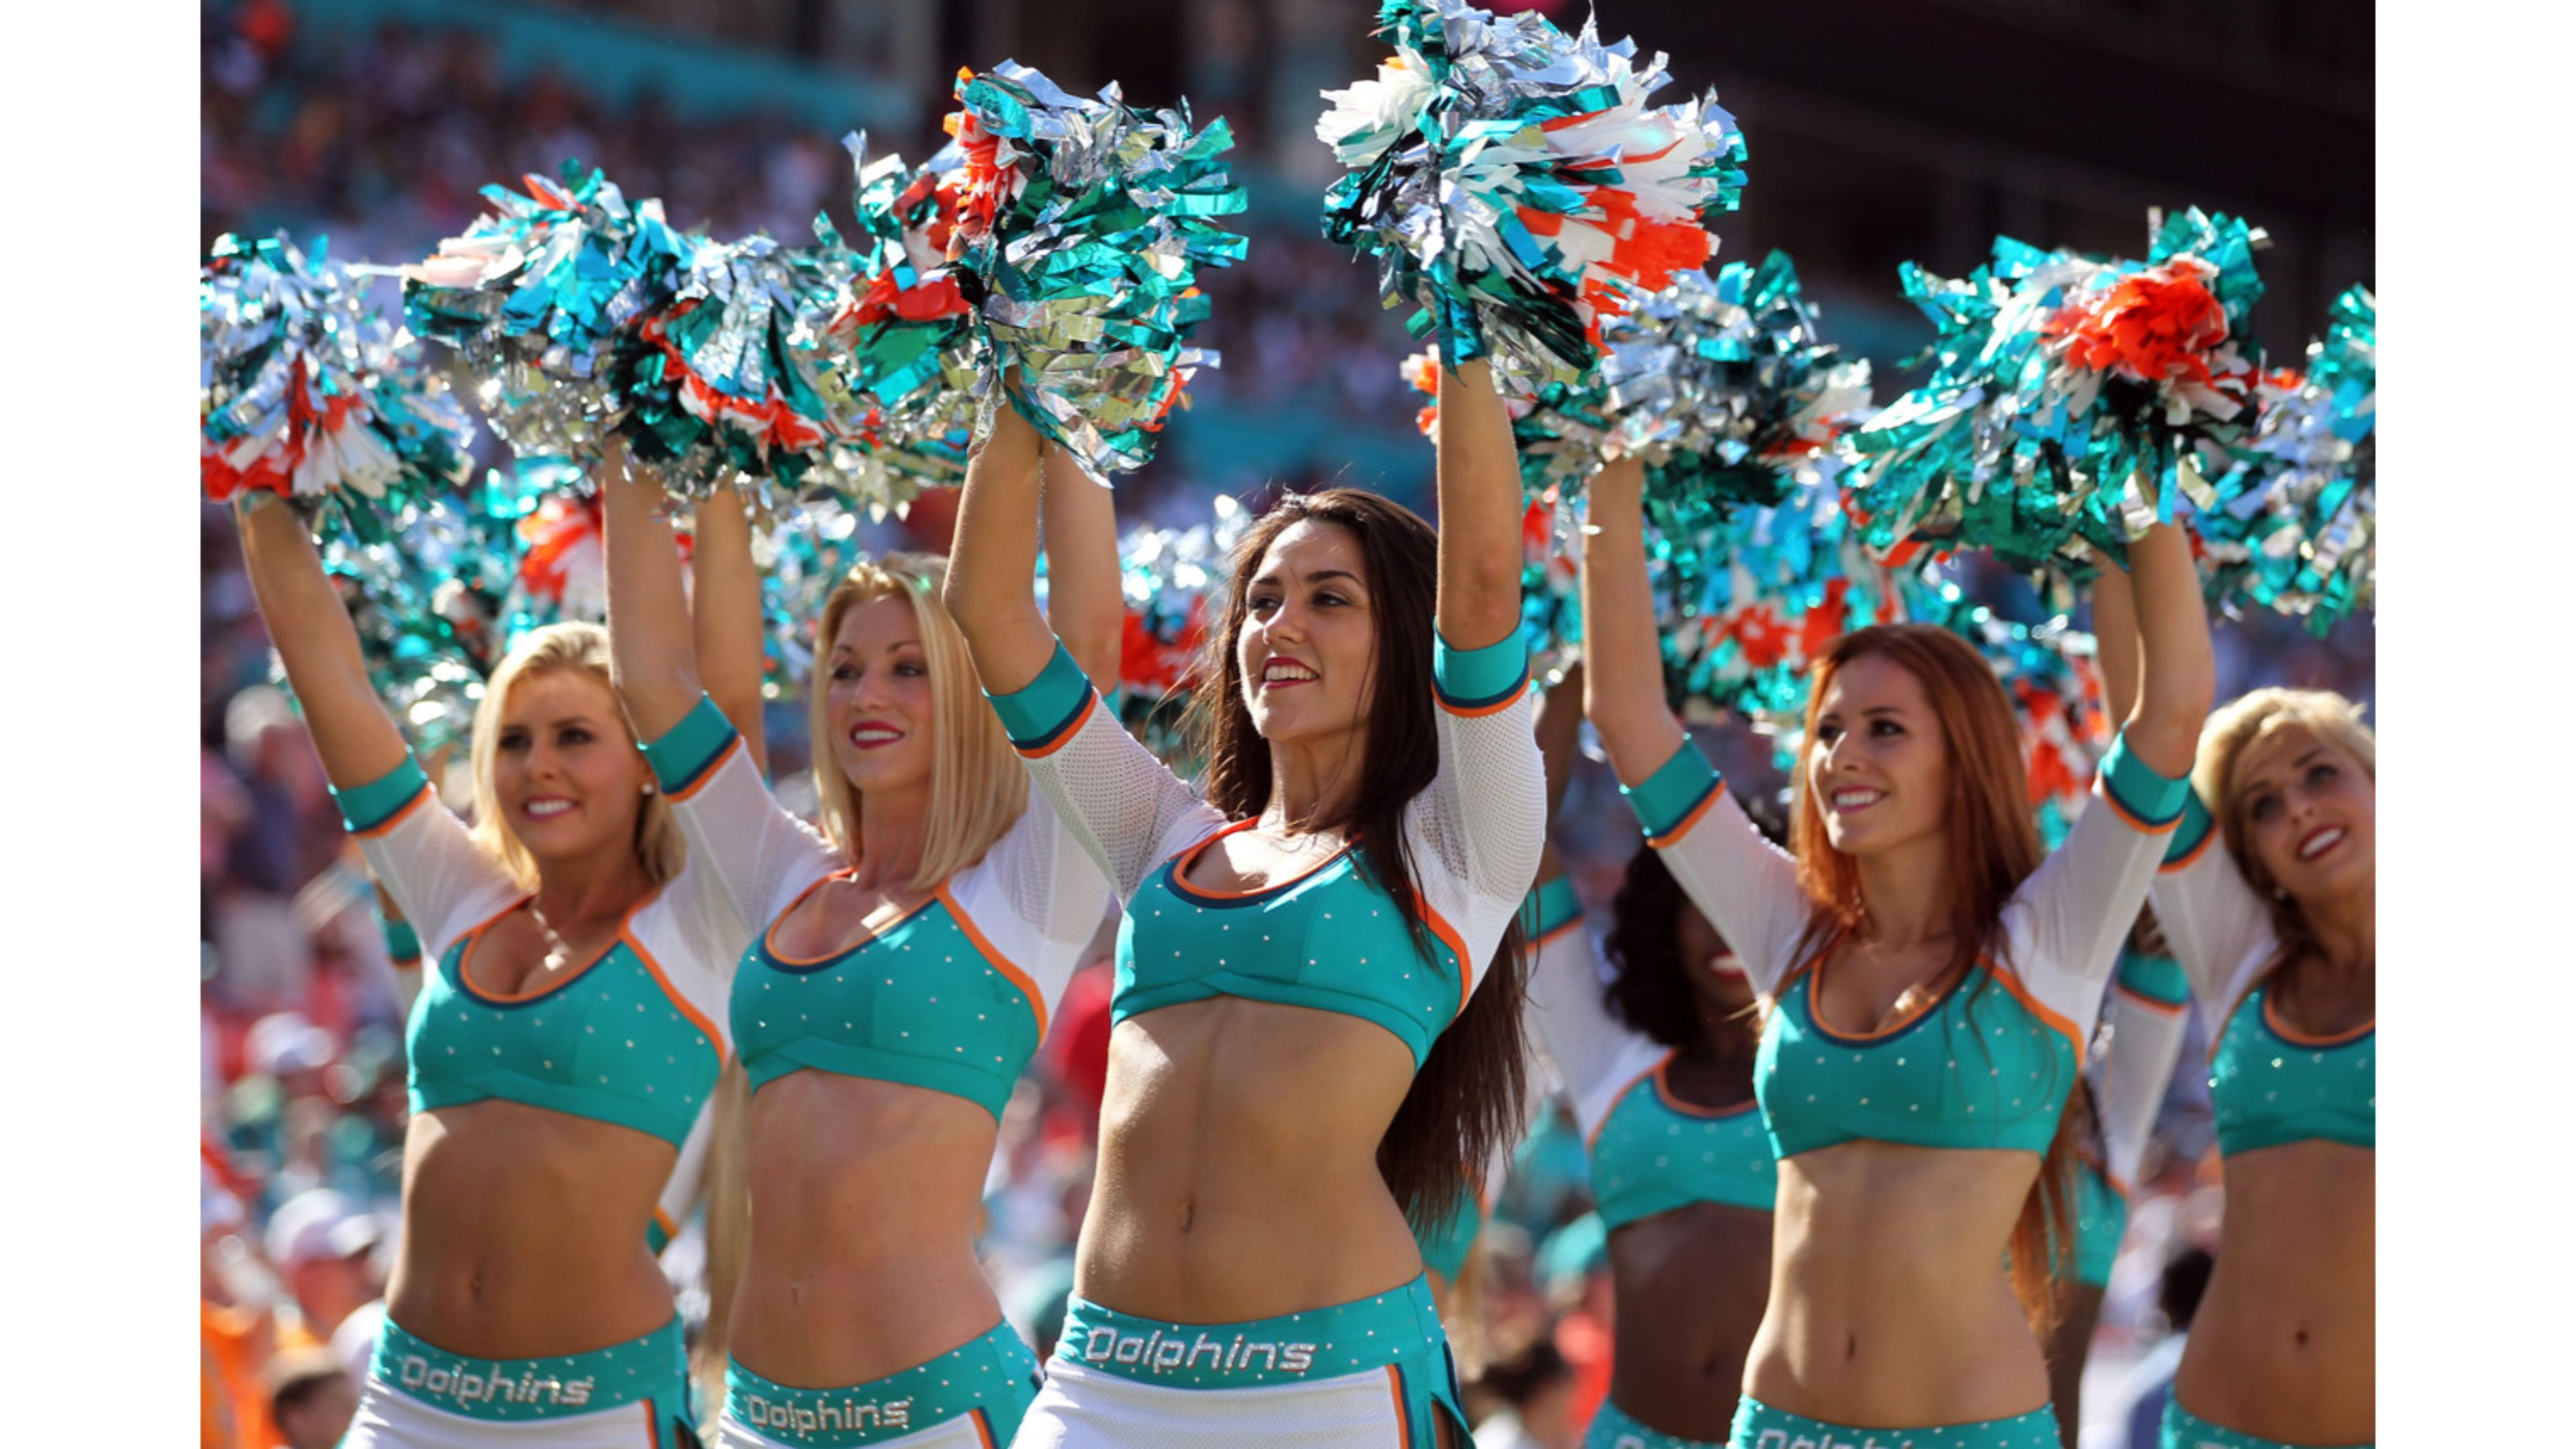 Cute Dolphin Wallpaper Desktop Download Miami Dolphins Cheerleaders Wallpaper Gallery